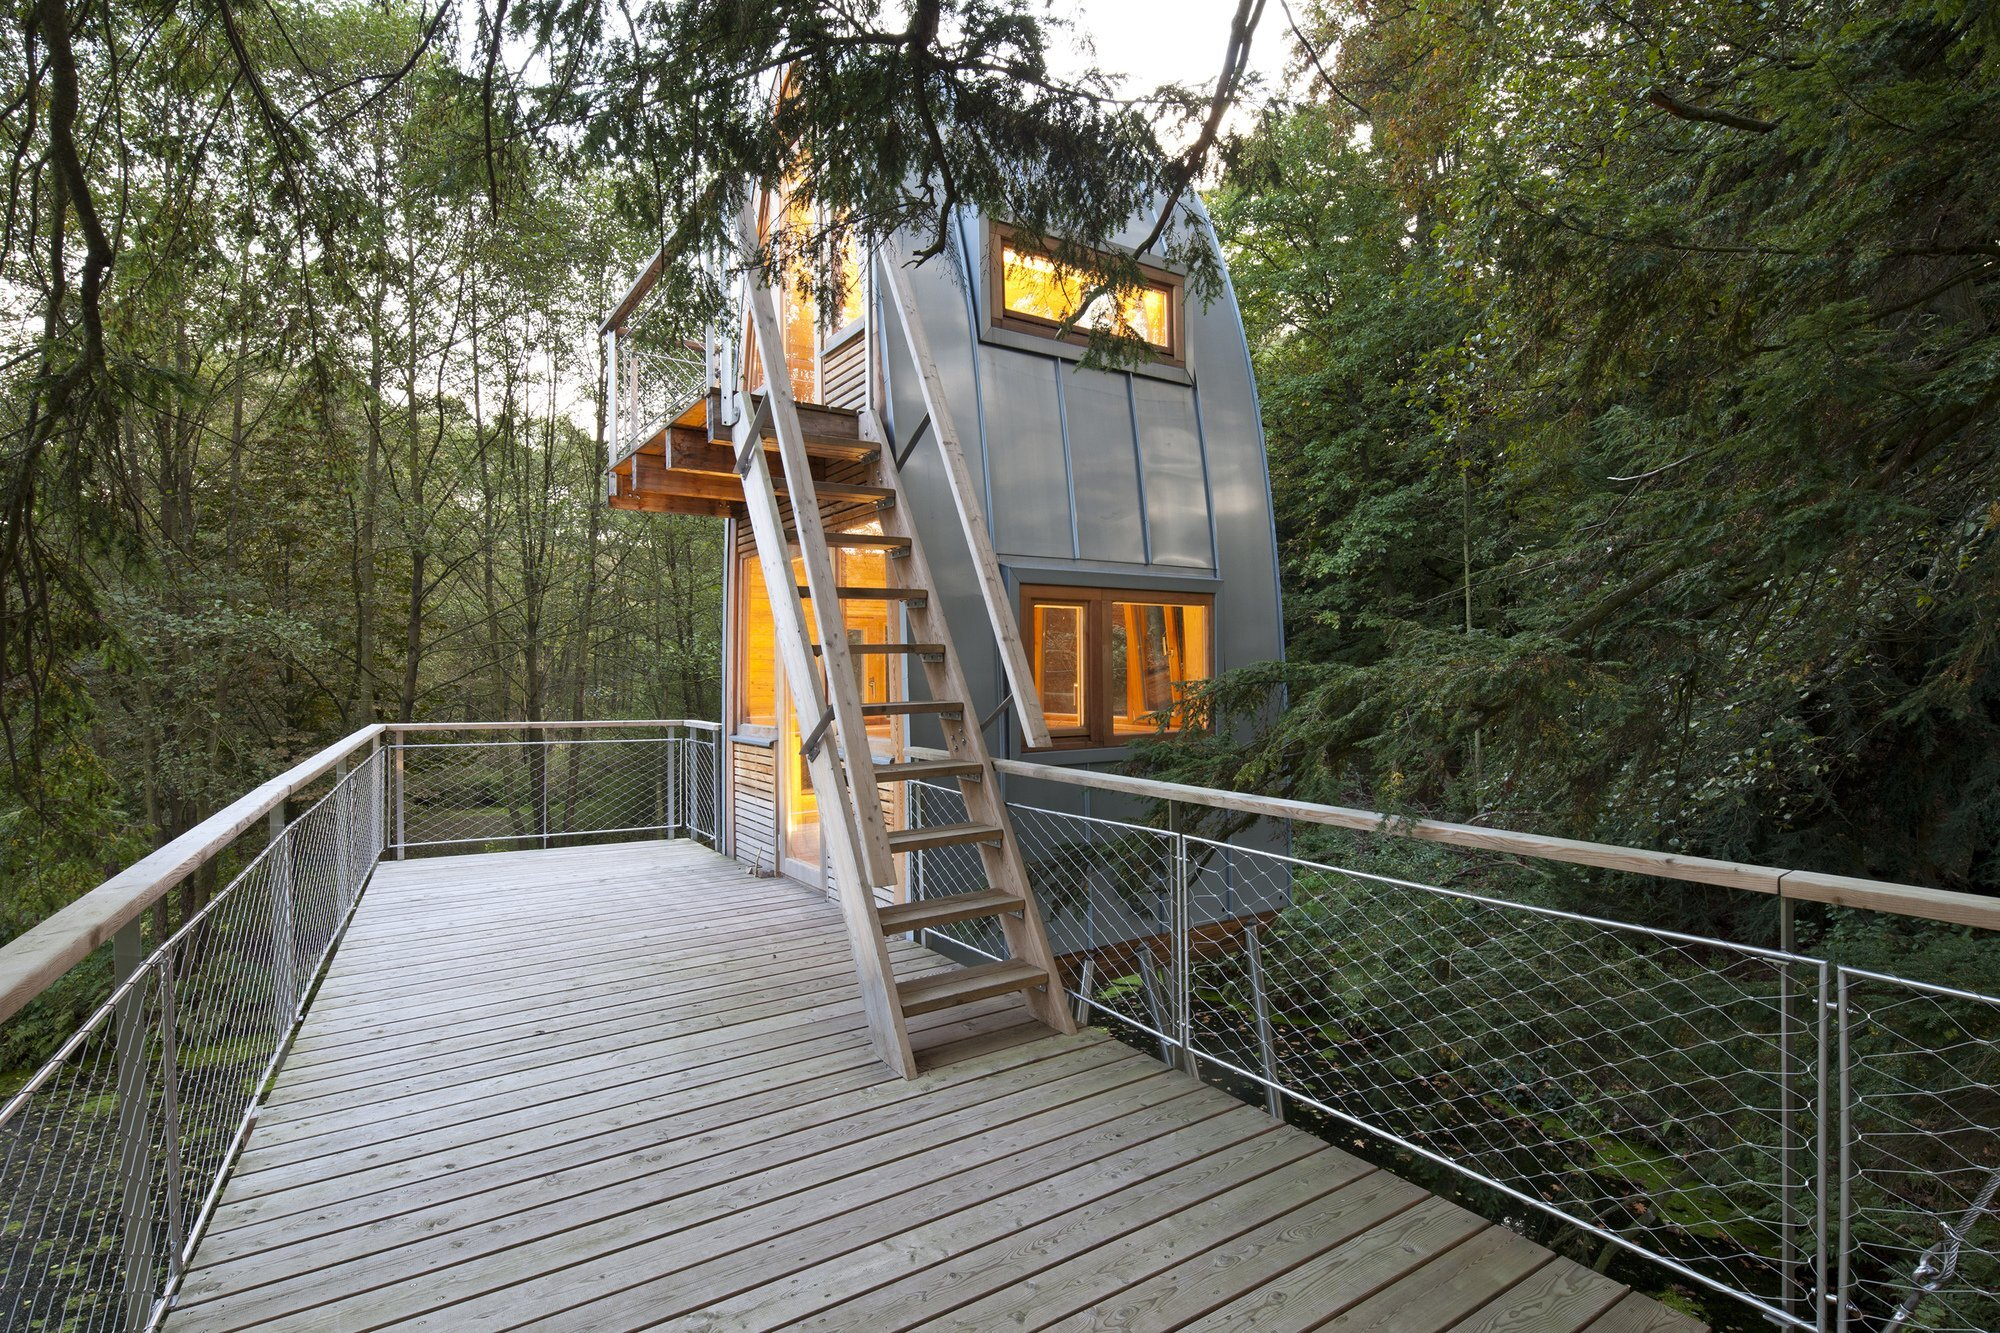 Treehouse Solling by Baumraum - Uslar Germany - Treehouse - Decking - Humble Homes